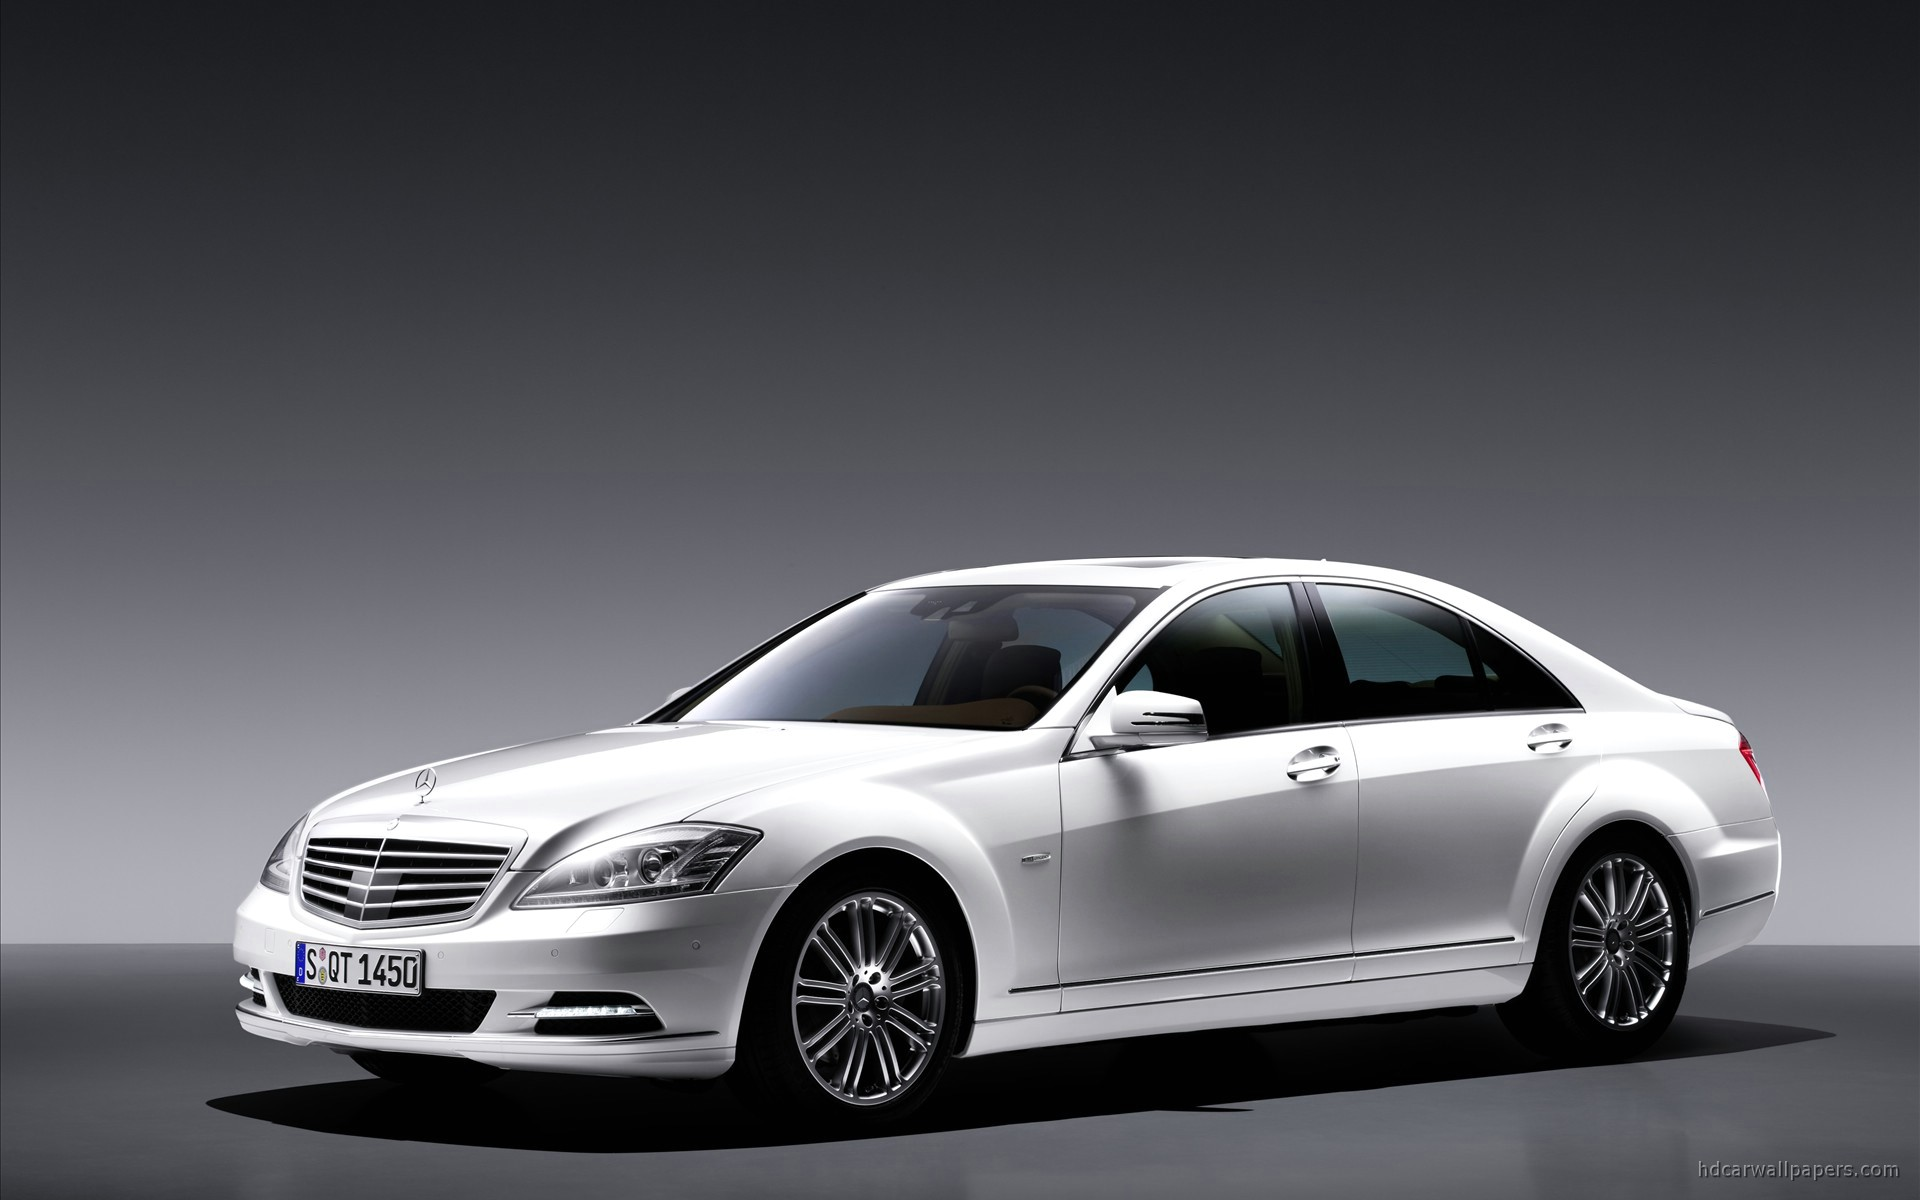 2010 mercedes benz s class wallpaper hd car wallpapers for 2009 s class mercedes benz